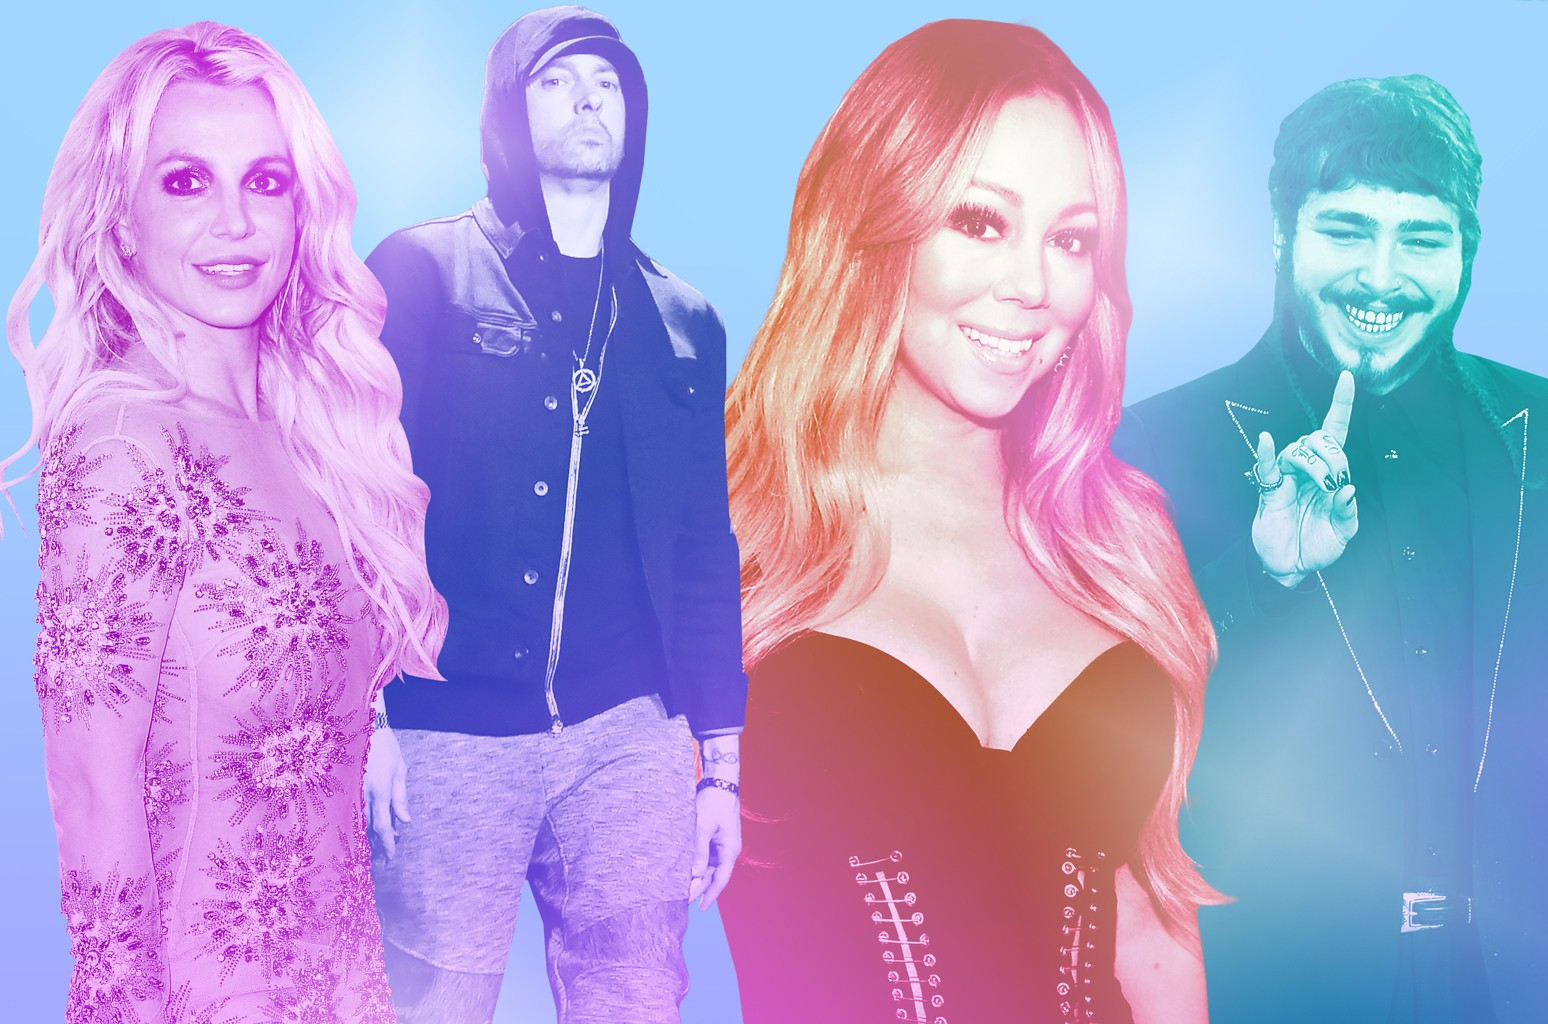 From left: Britney Spears, Eminem, Mariah Carey & Post Malone